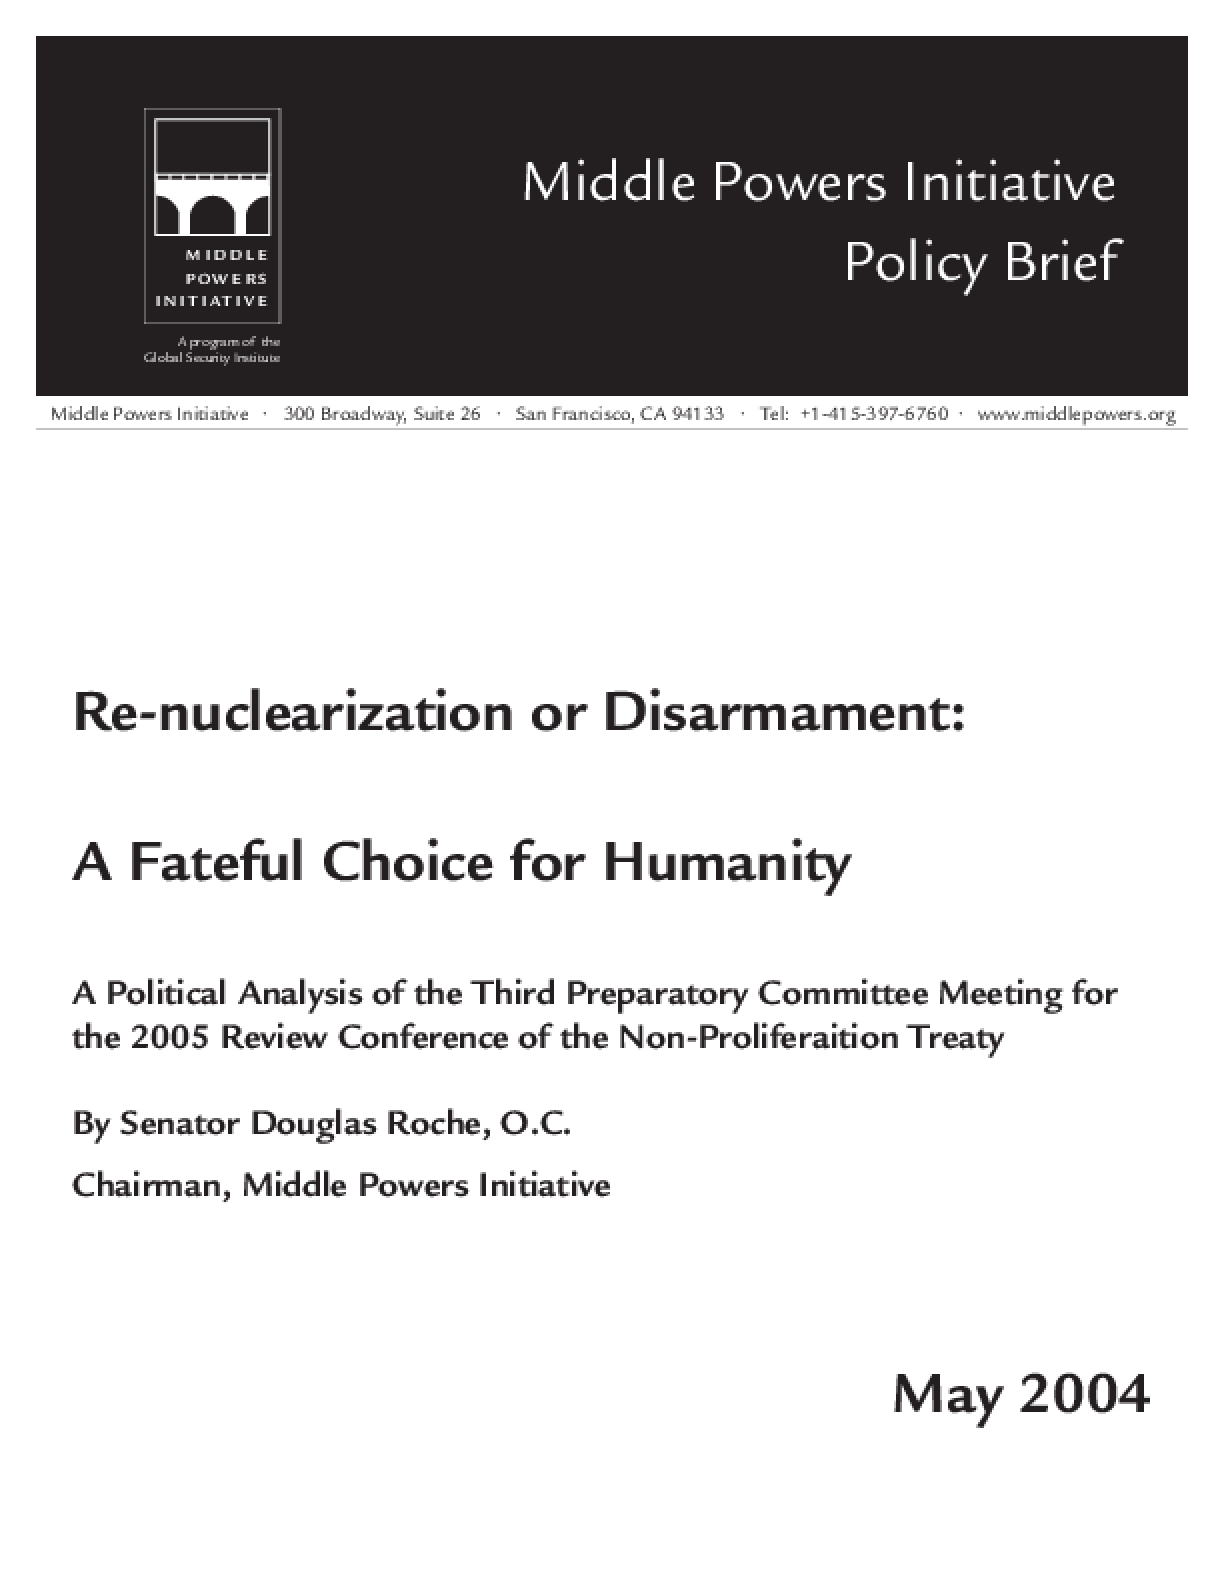 Re-nuclearization or Disarmament: A Fateful Choice for Humanity